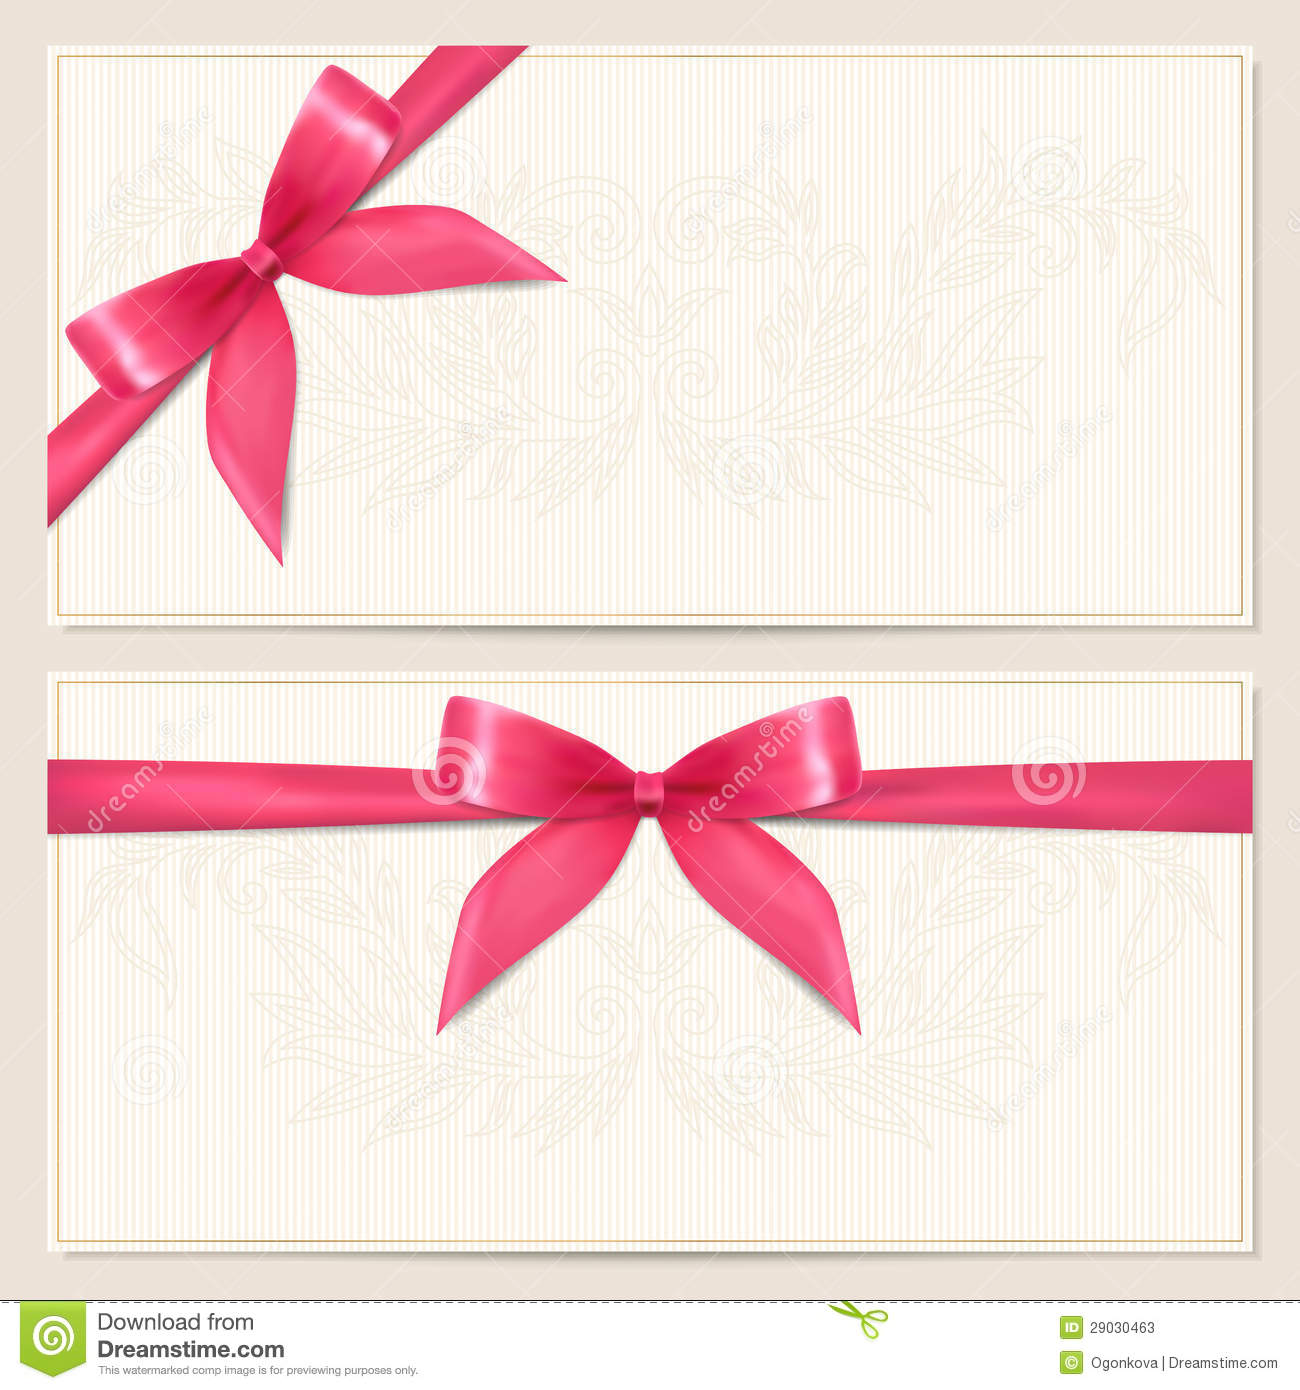 Gift Voucher Coupon Template With Bow Ribbons Stock